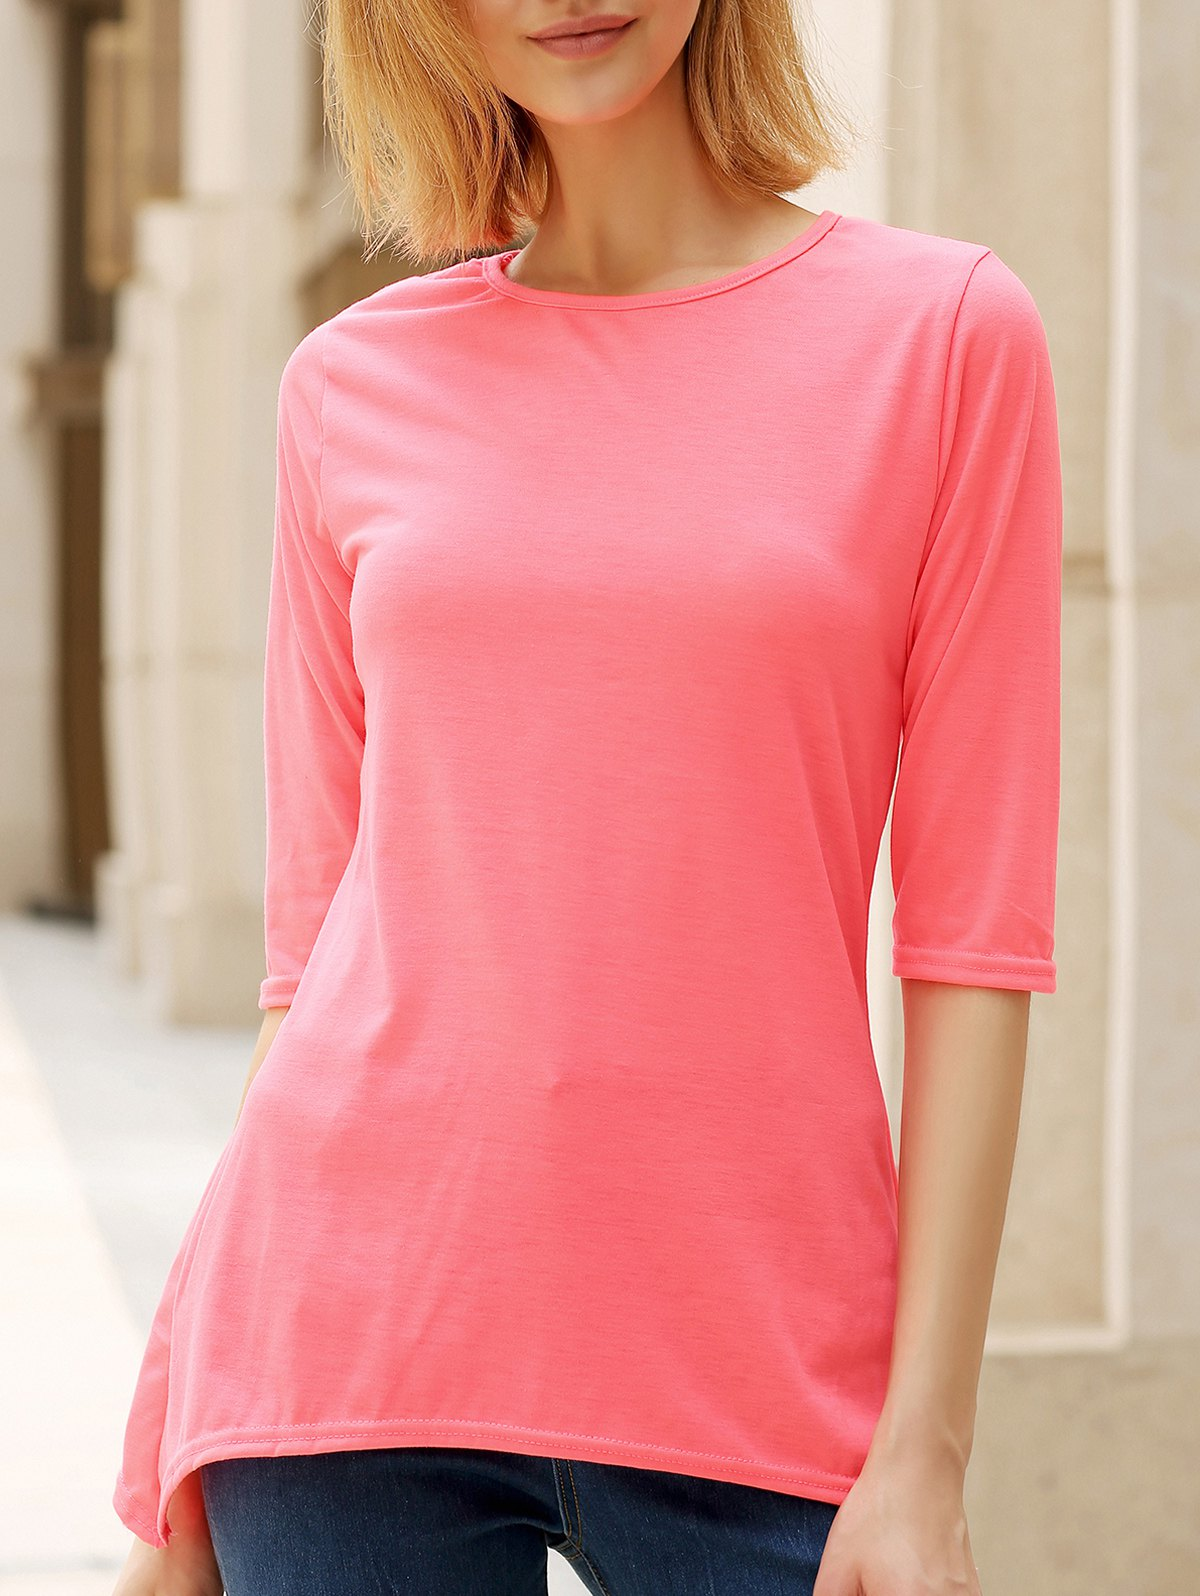 Stylish Women's Round Neck 3/4 Sleeve High Low T-Shirt